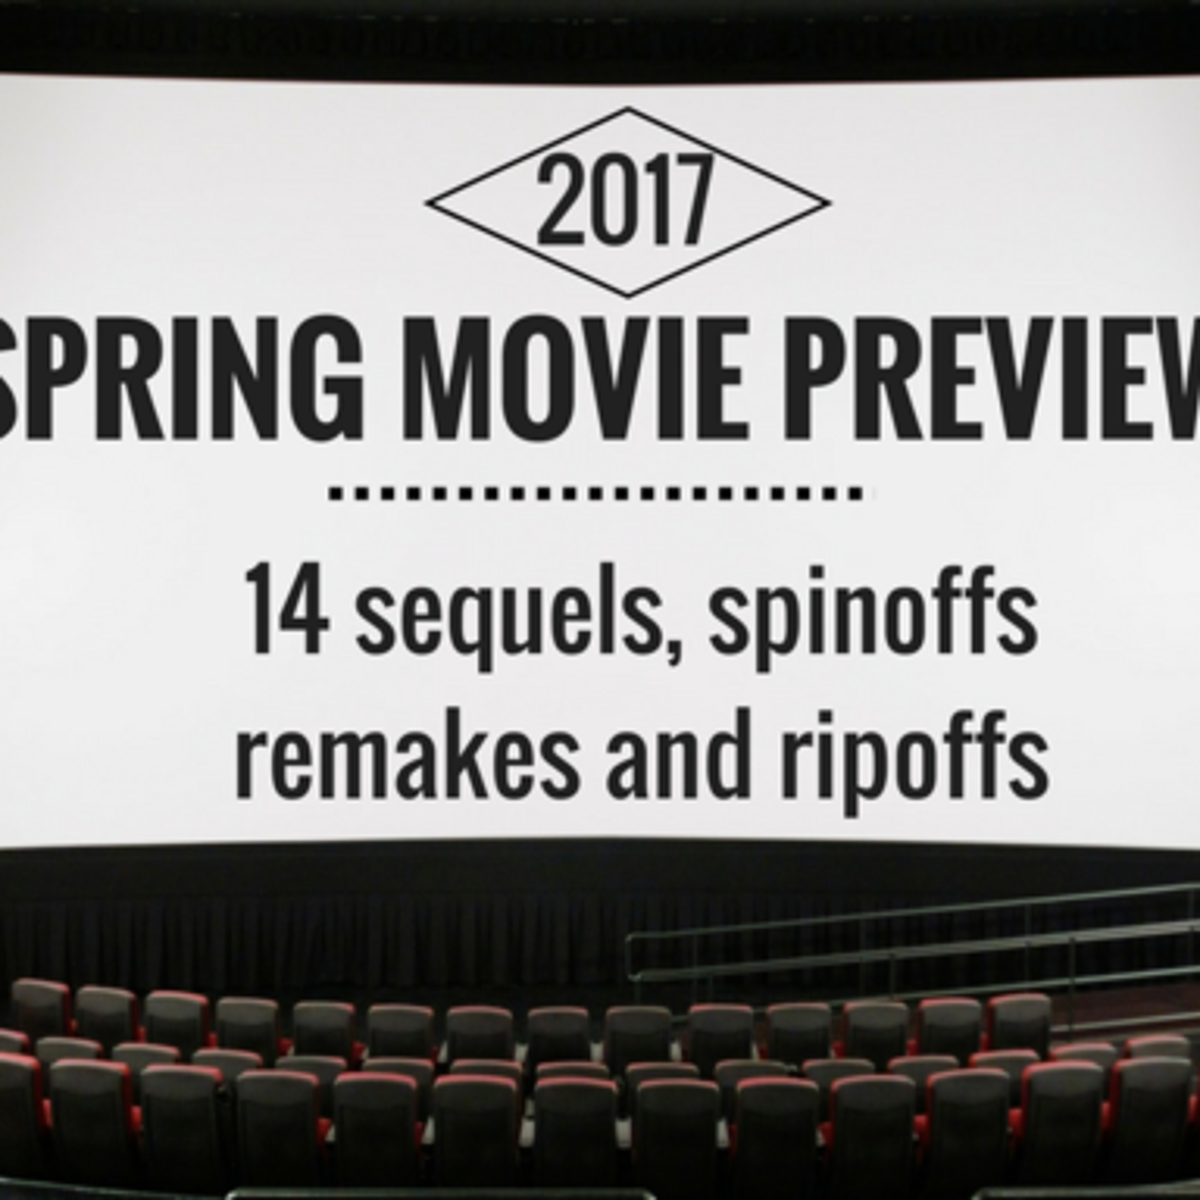 2017 Spring Movie Preview: 14 sequels, spinoffs, remakes and ripoffs